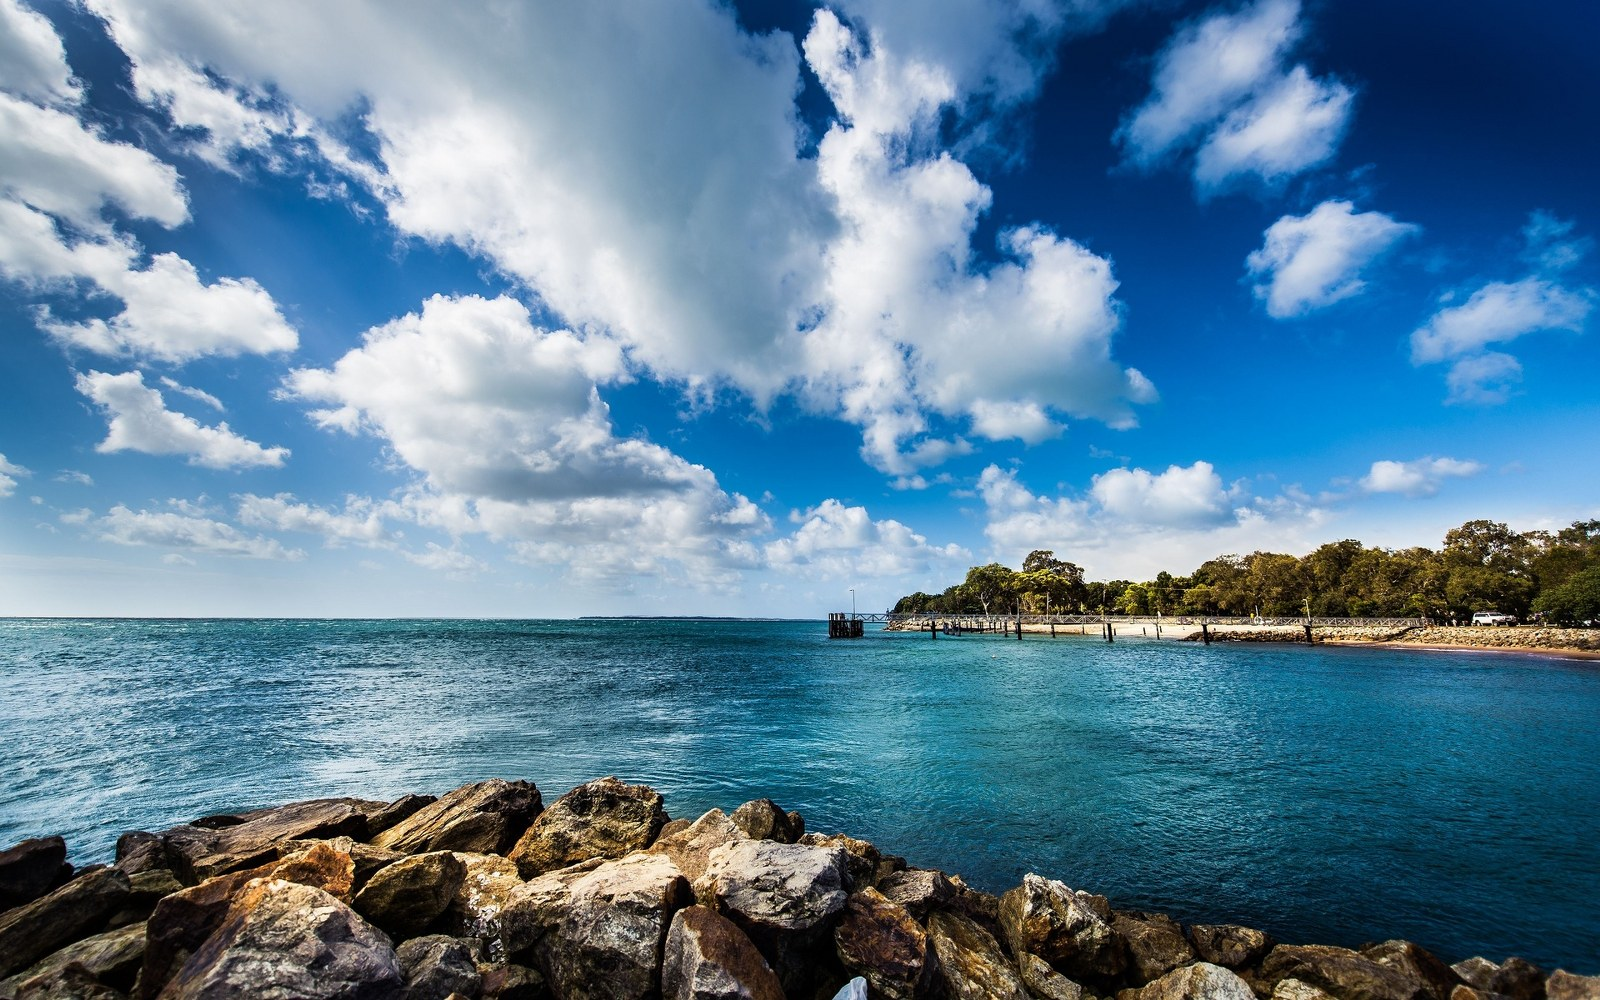 Blue Ocean And Sea Scene 2013 | wallpapers55.com - Best Wallpapers for ...